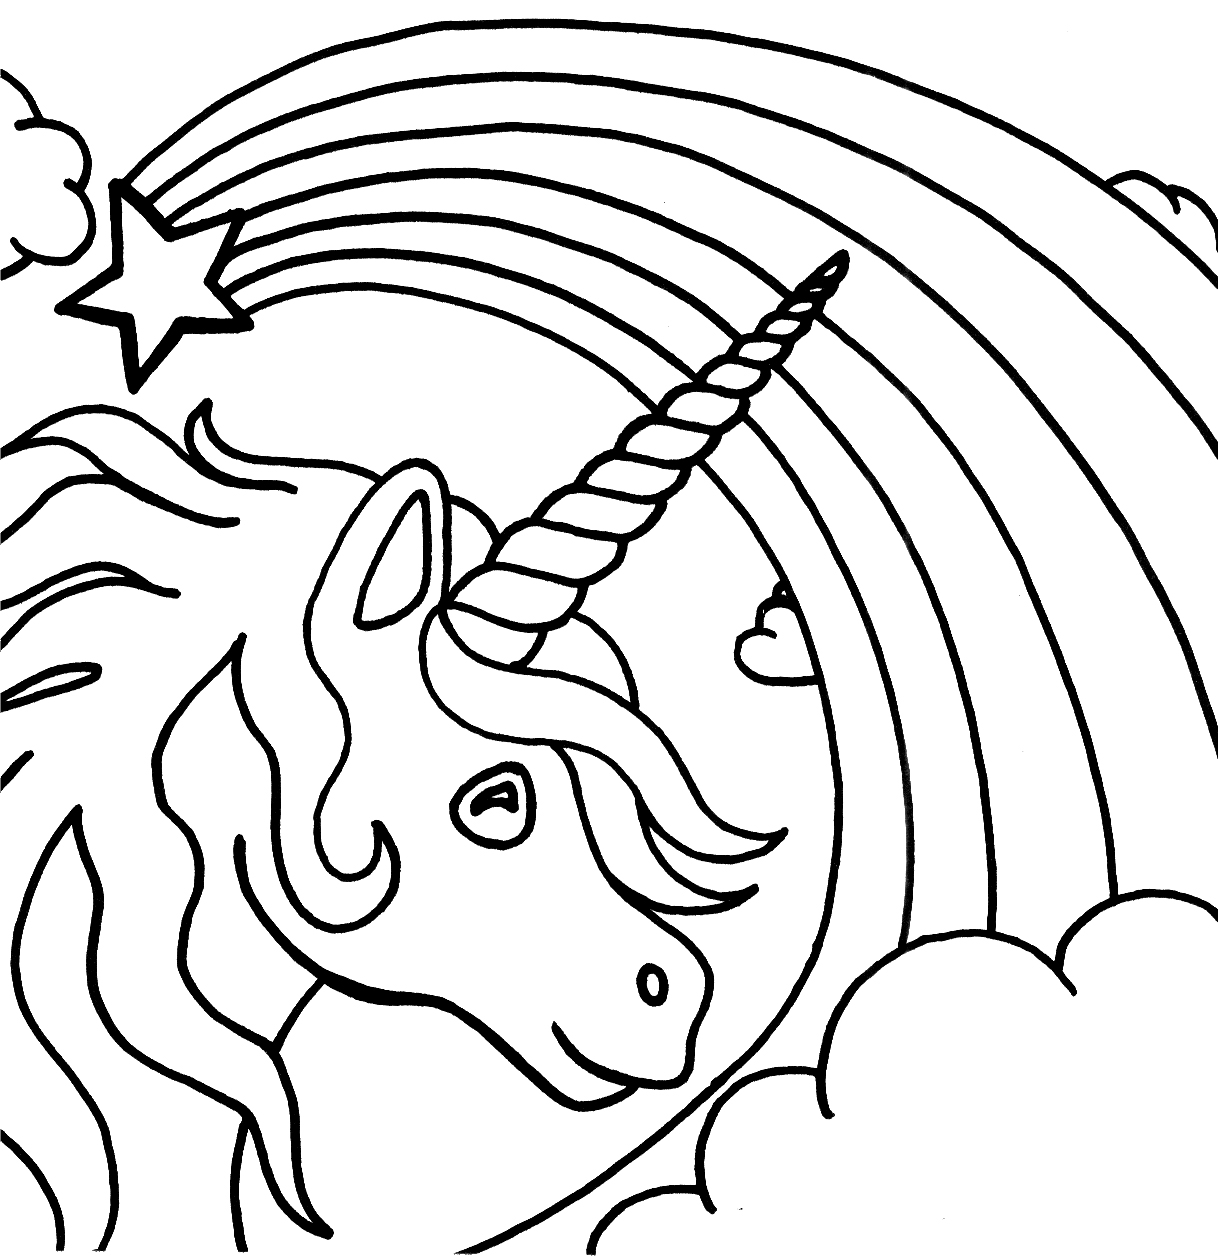 Unicorn family coloring pages - Unicorn Coloring Pages For Kids